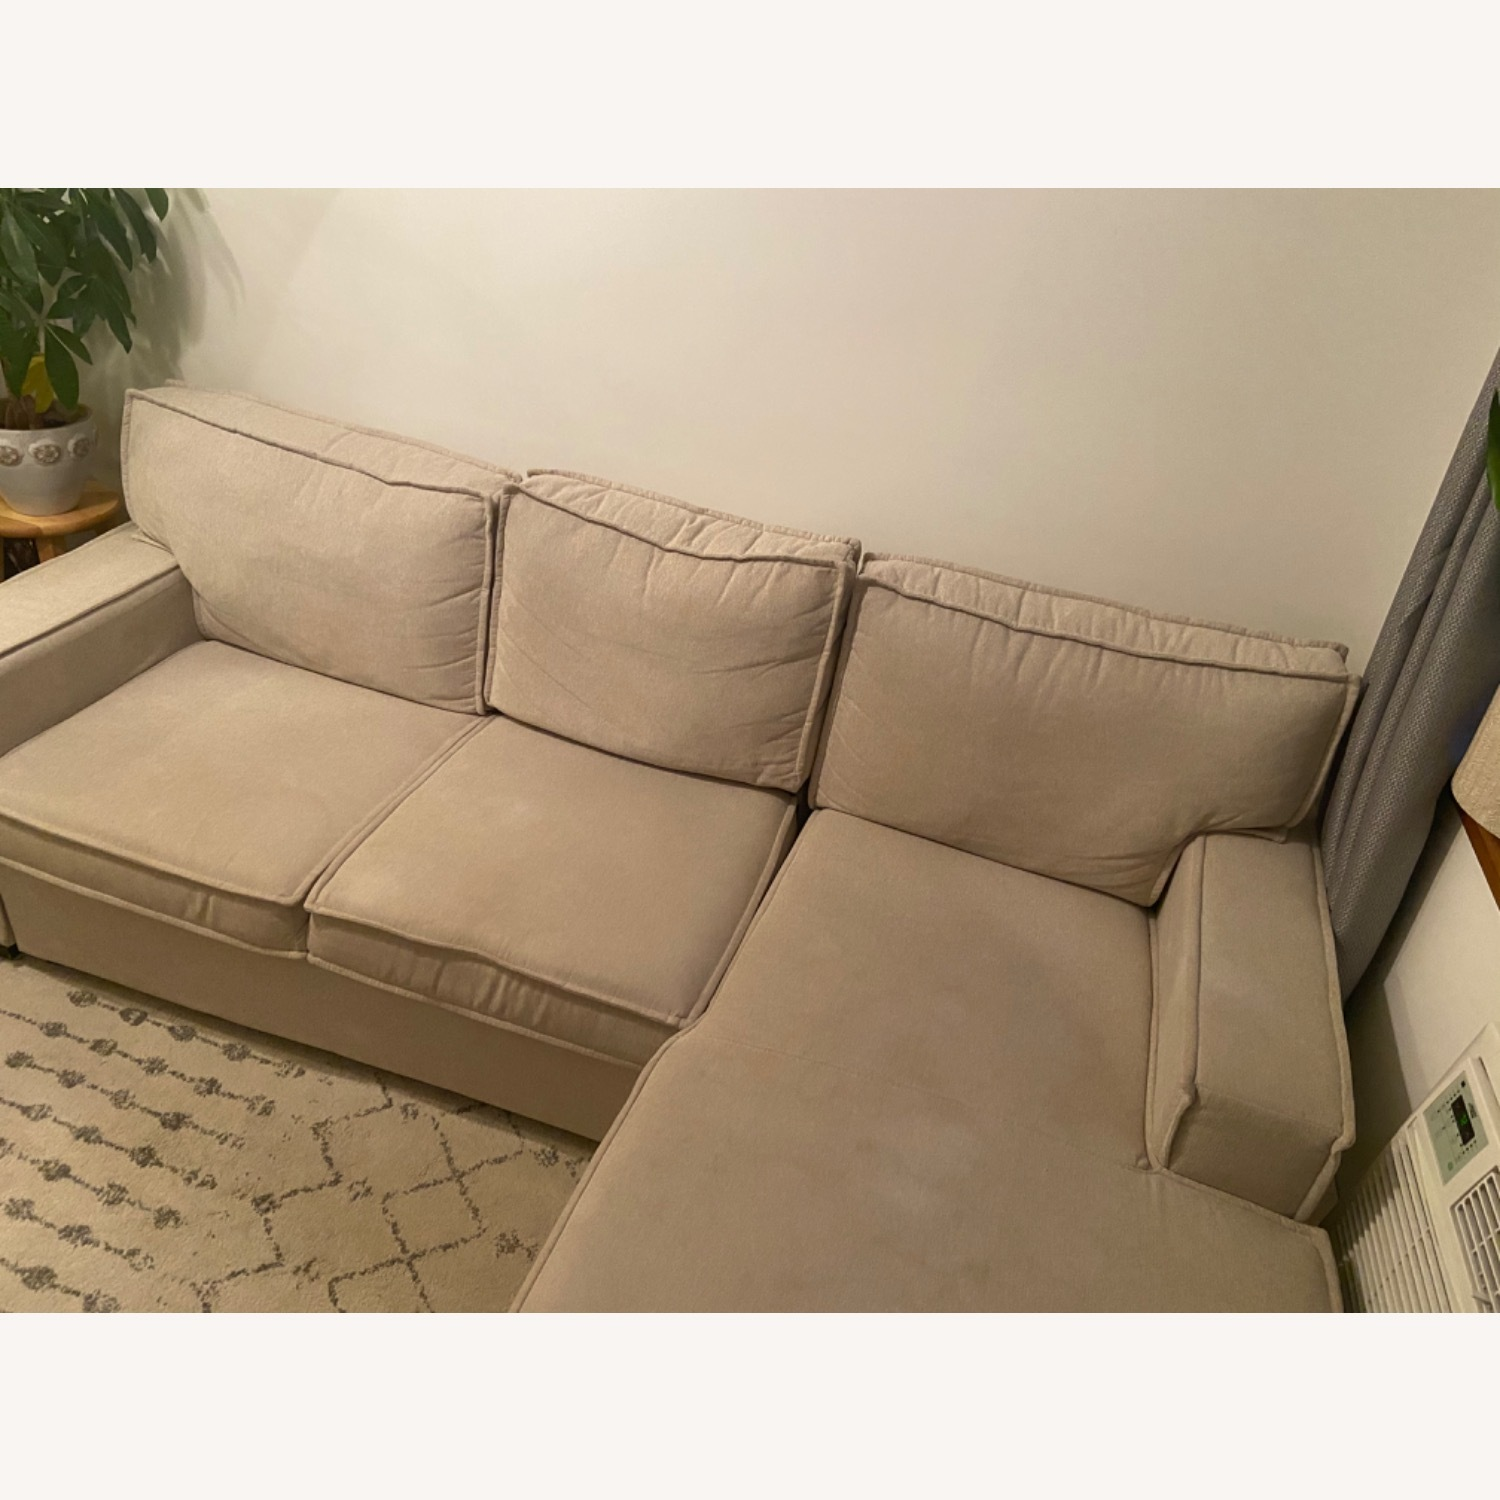 Bob's Discount Sectional with Storage - image-2